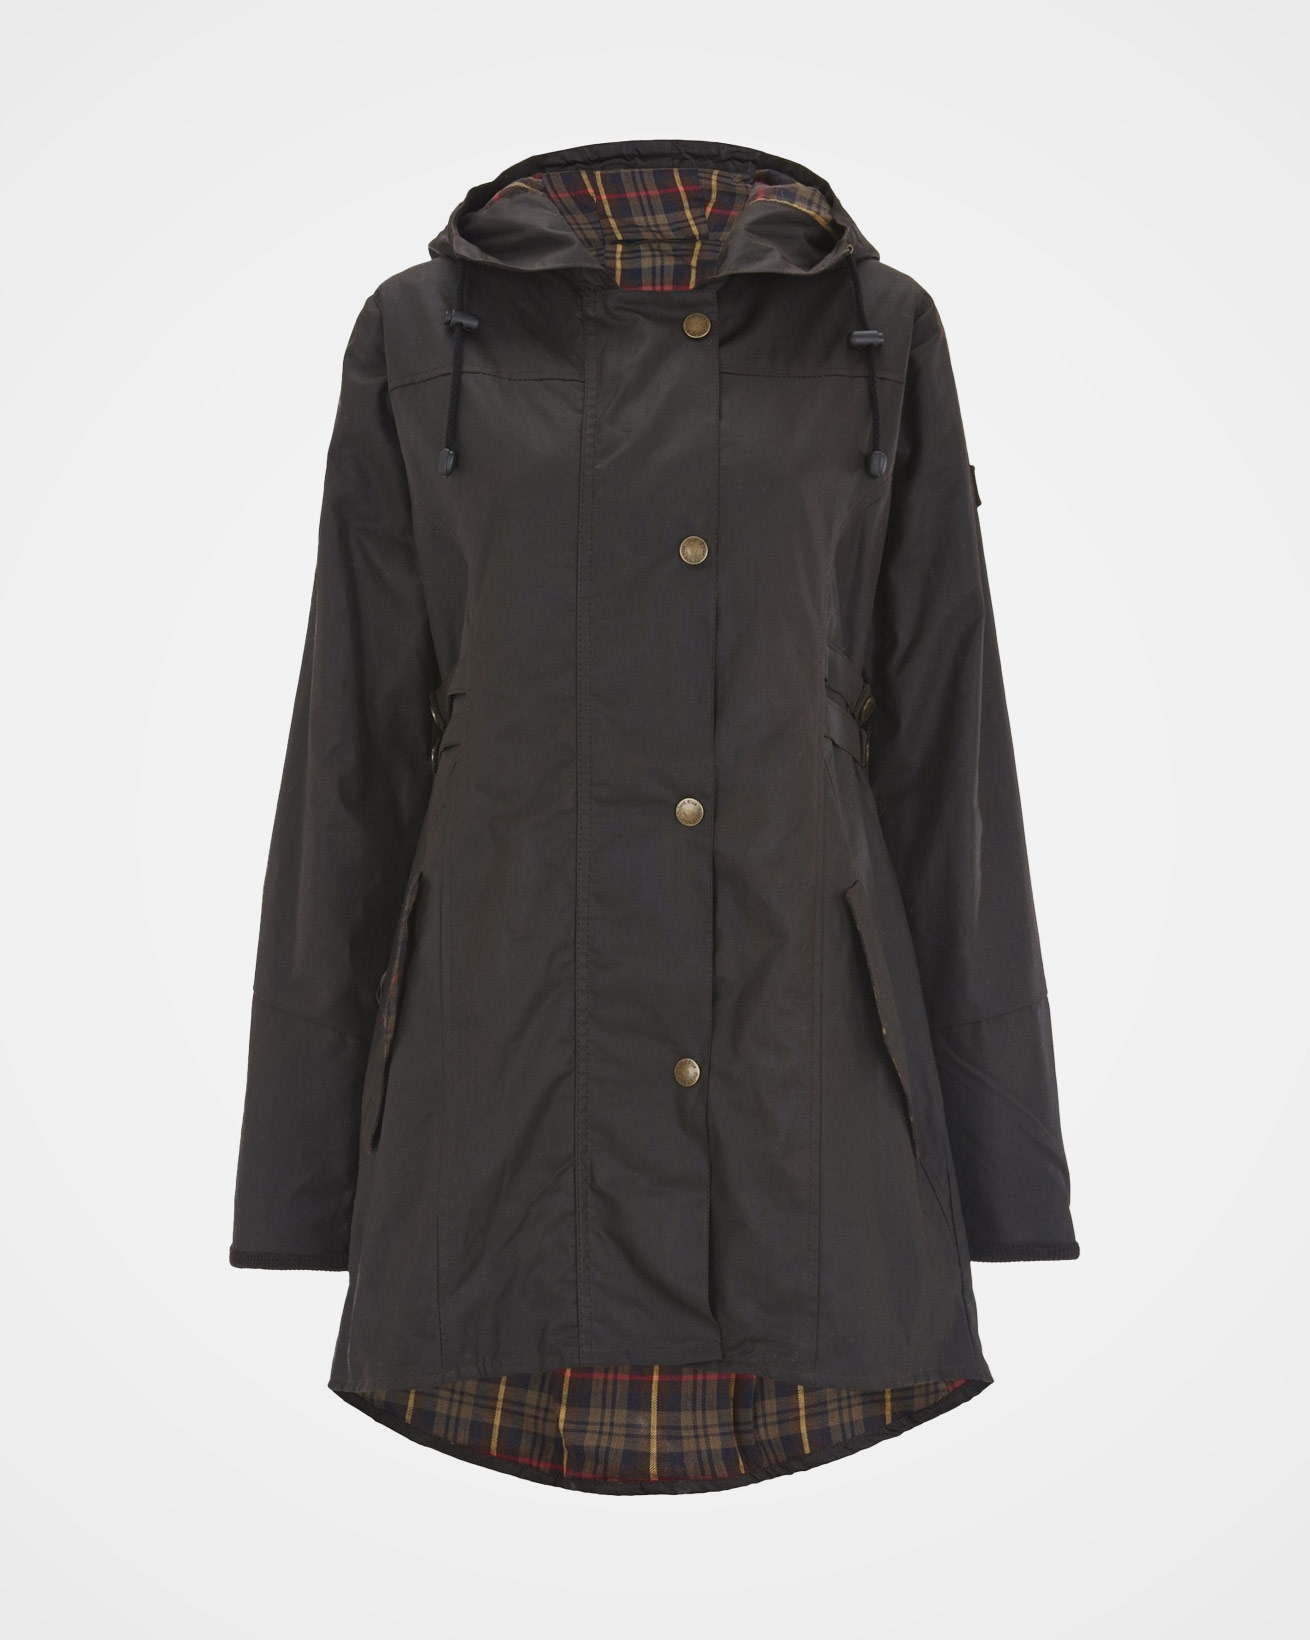 7261_waxed-riding-coatdark-brown_front.jpg